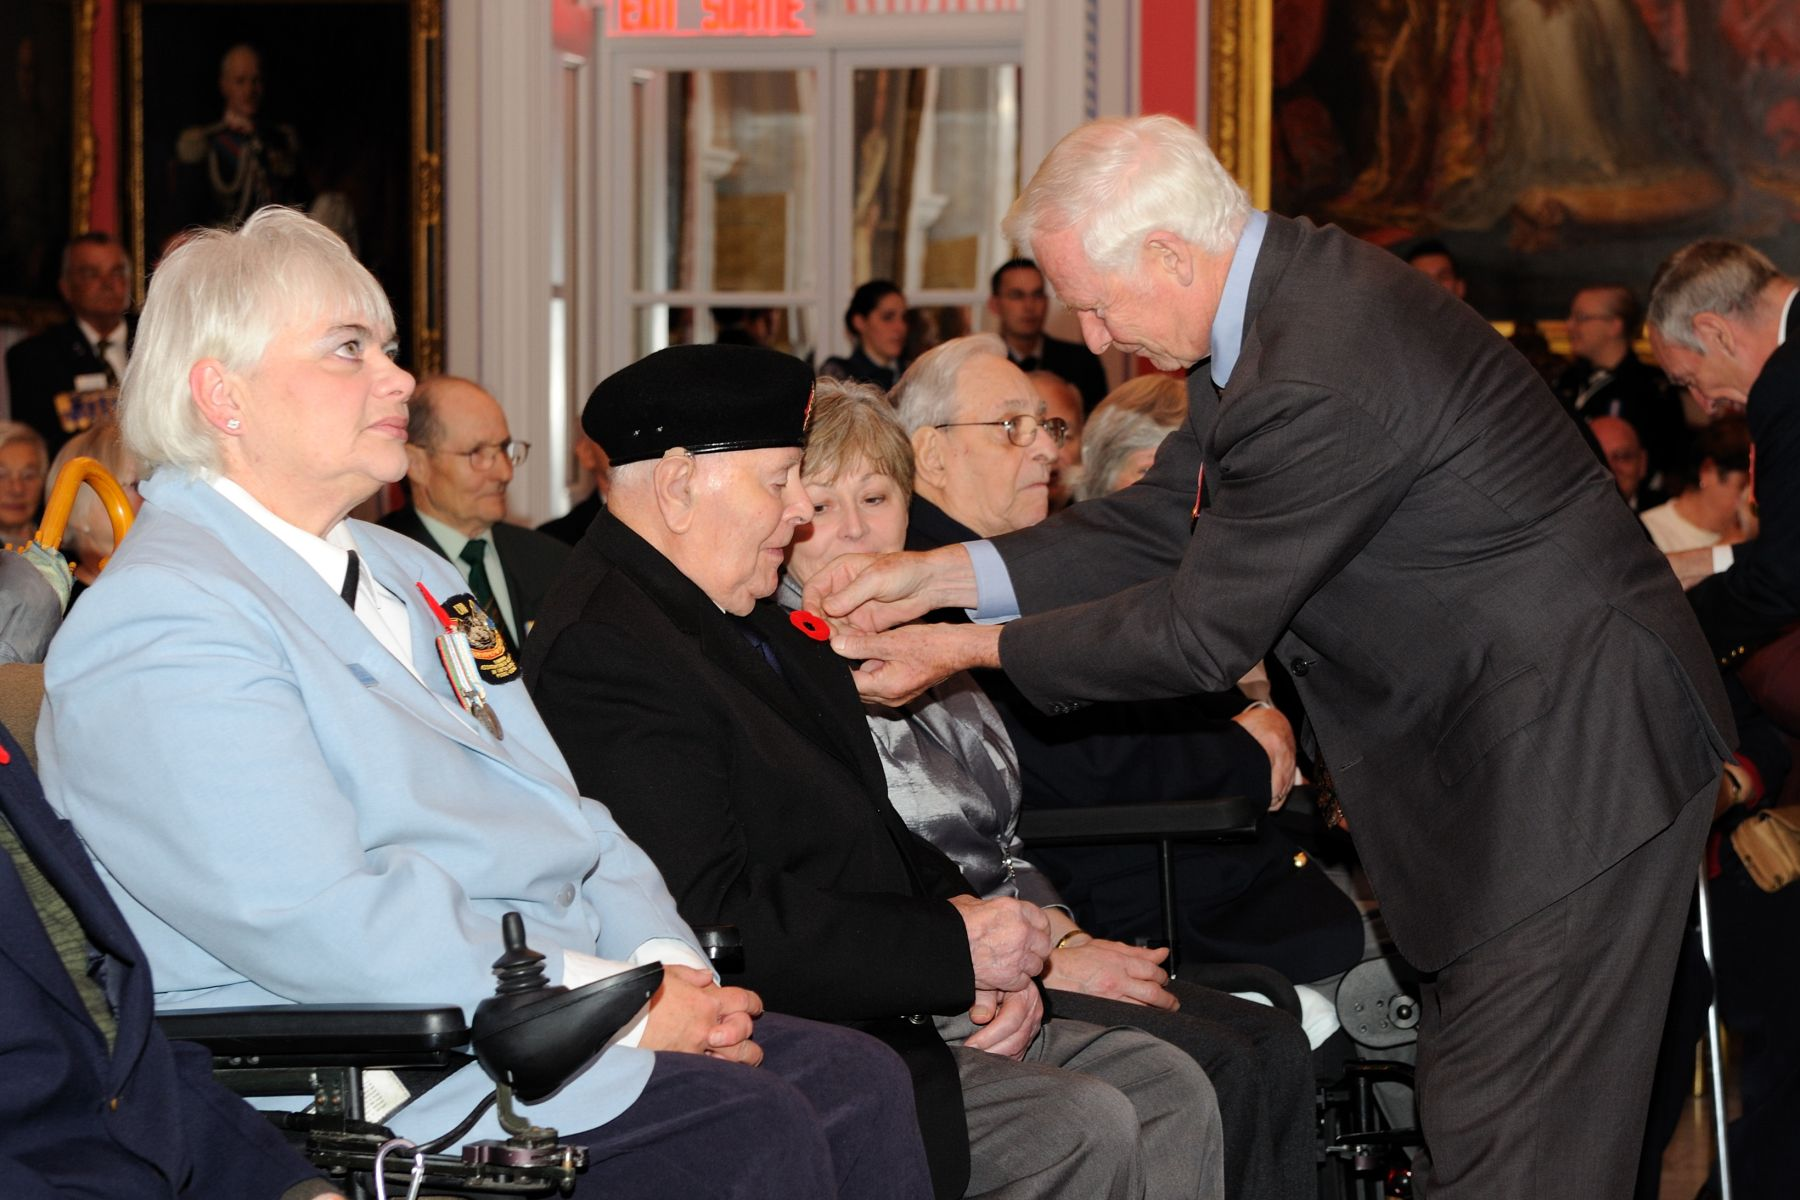 His Excellency gave poppies to veterans who attended the ceremony at Rideau Hall. Each year, approximately 18 million poppies are distributed in communities across Canada. Officially adopted in Canada in 1921 by the Great War Veterans' Association (the predecessor of today's Royal Canadian Legion), poppies are recognized as the national symbol of remembrance for the 117 000 Canadian men and women who gave their lives during military service around the world.